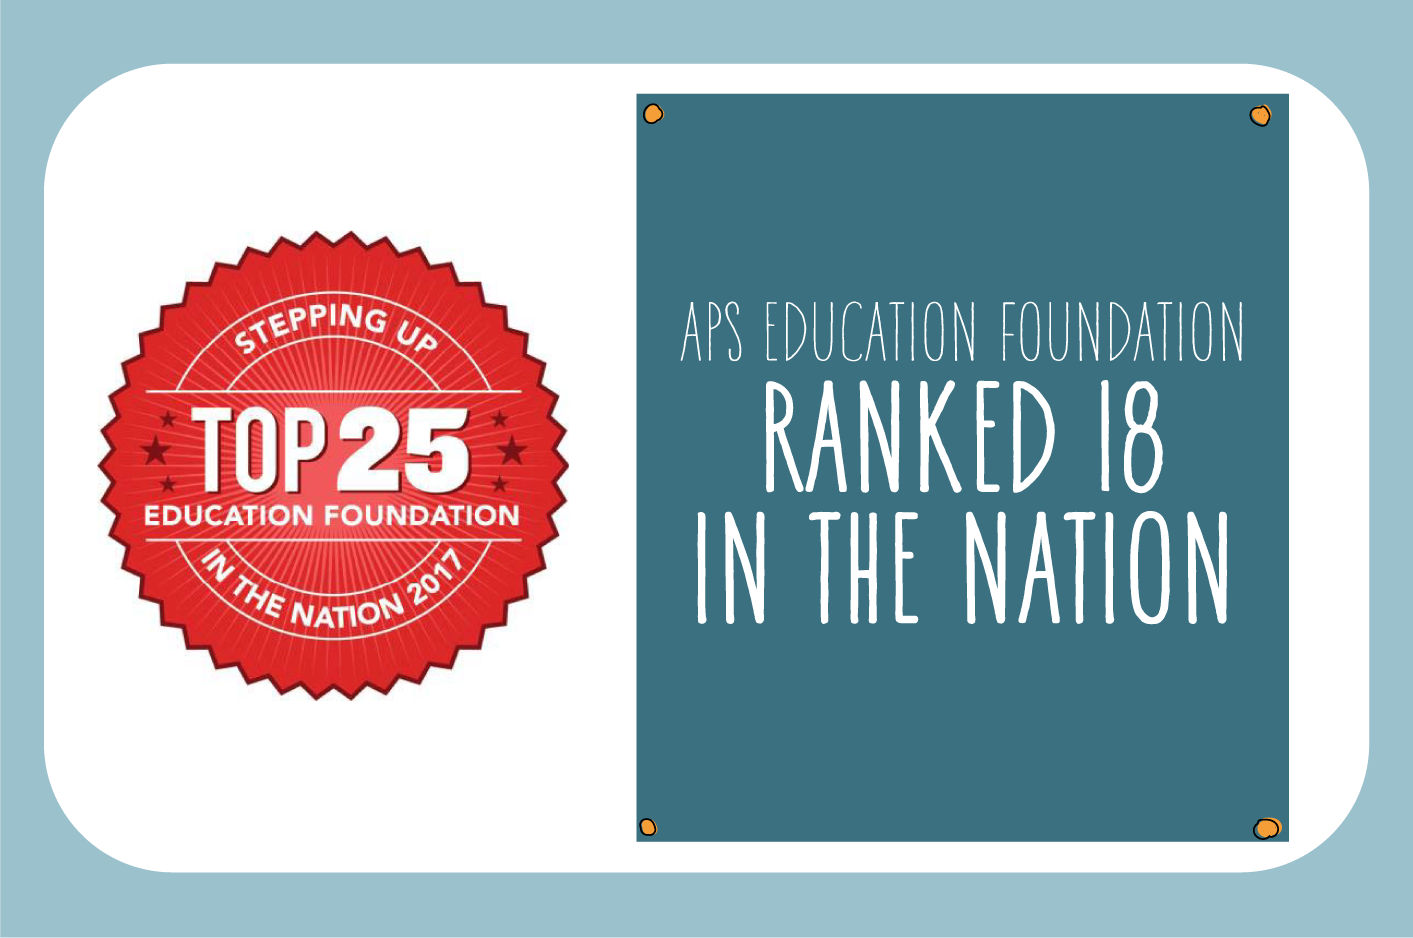 APS Education Foundation ranked 18th in the nation.